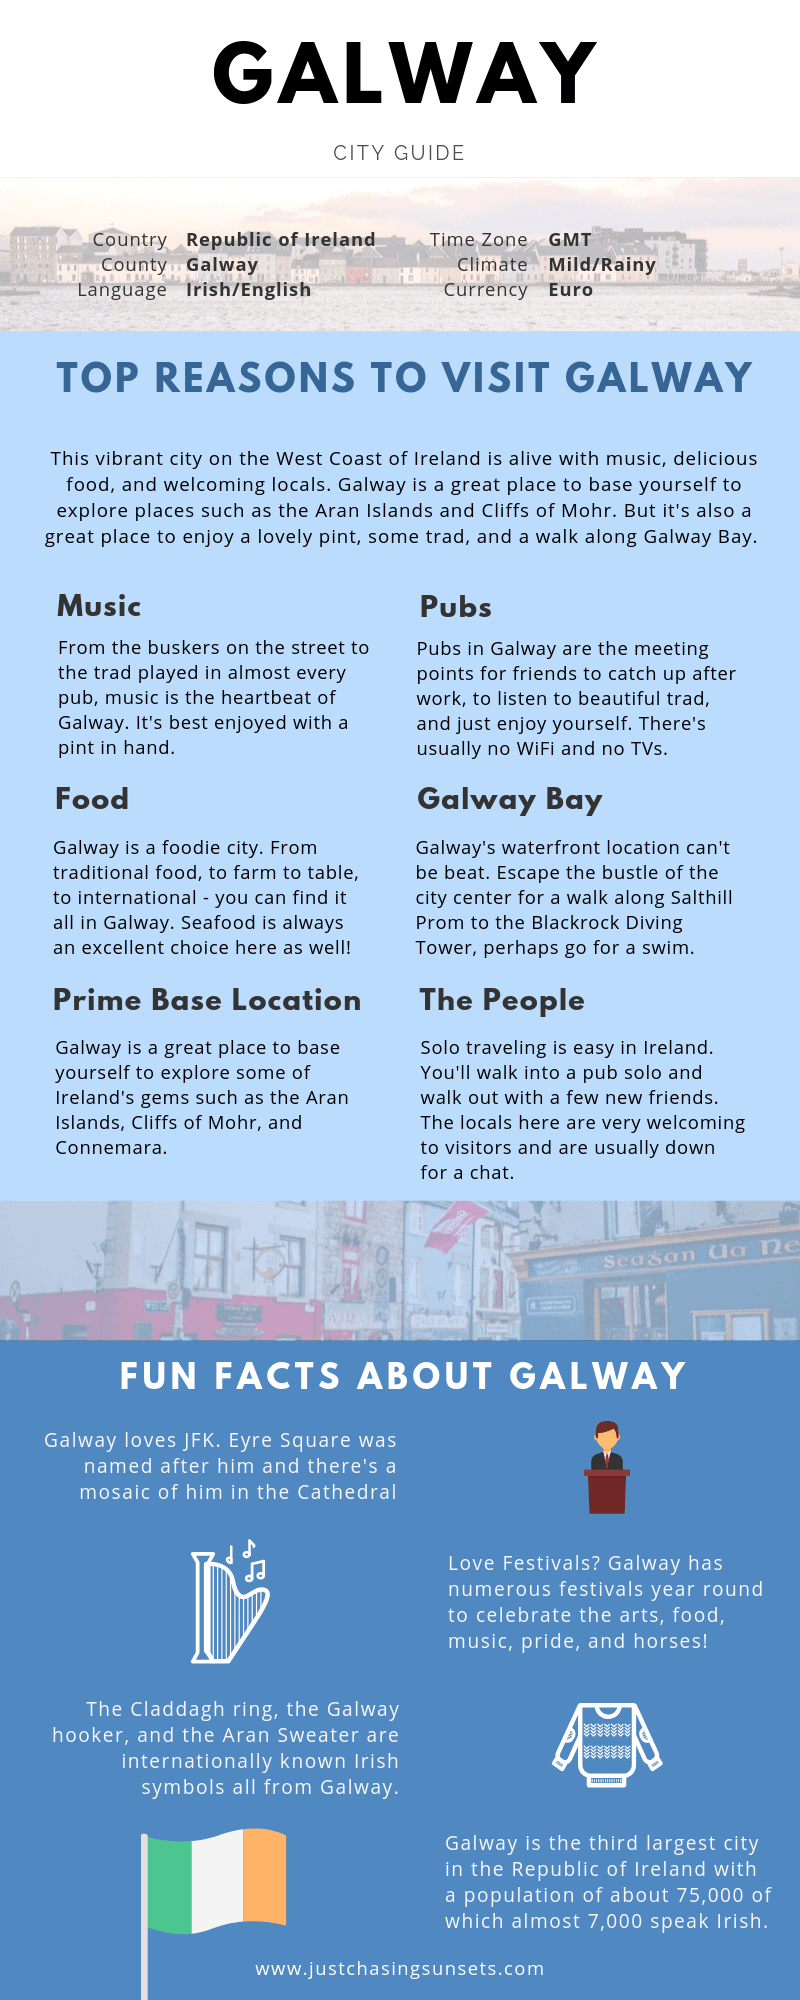 Galway City Guide